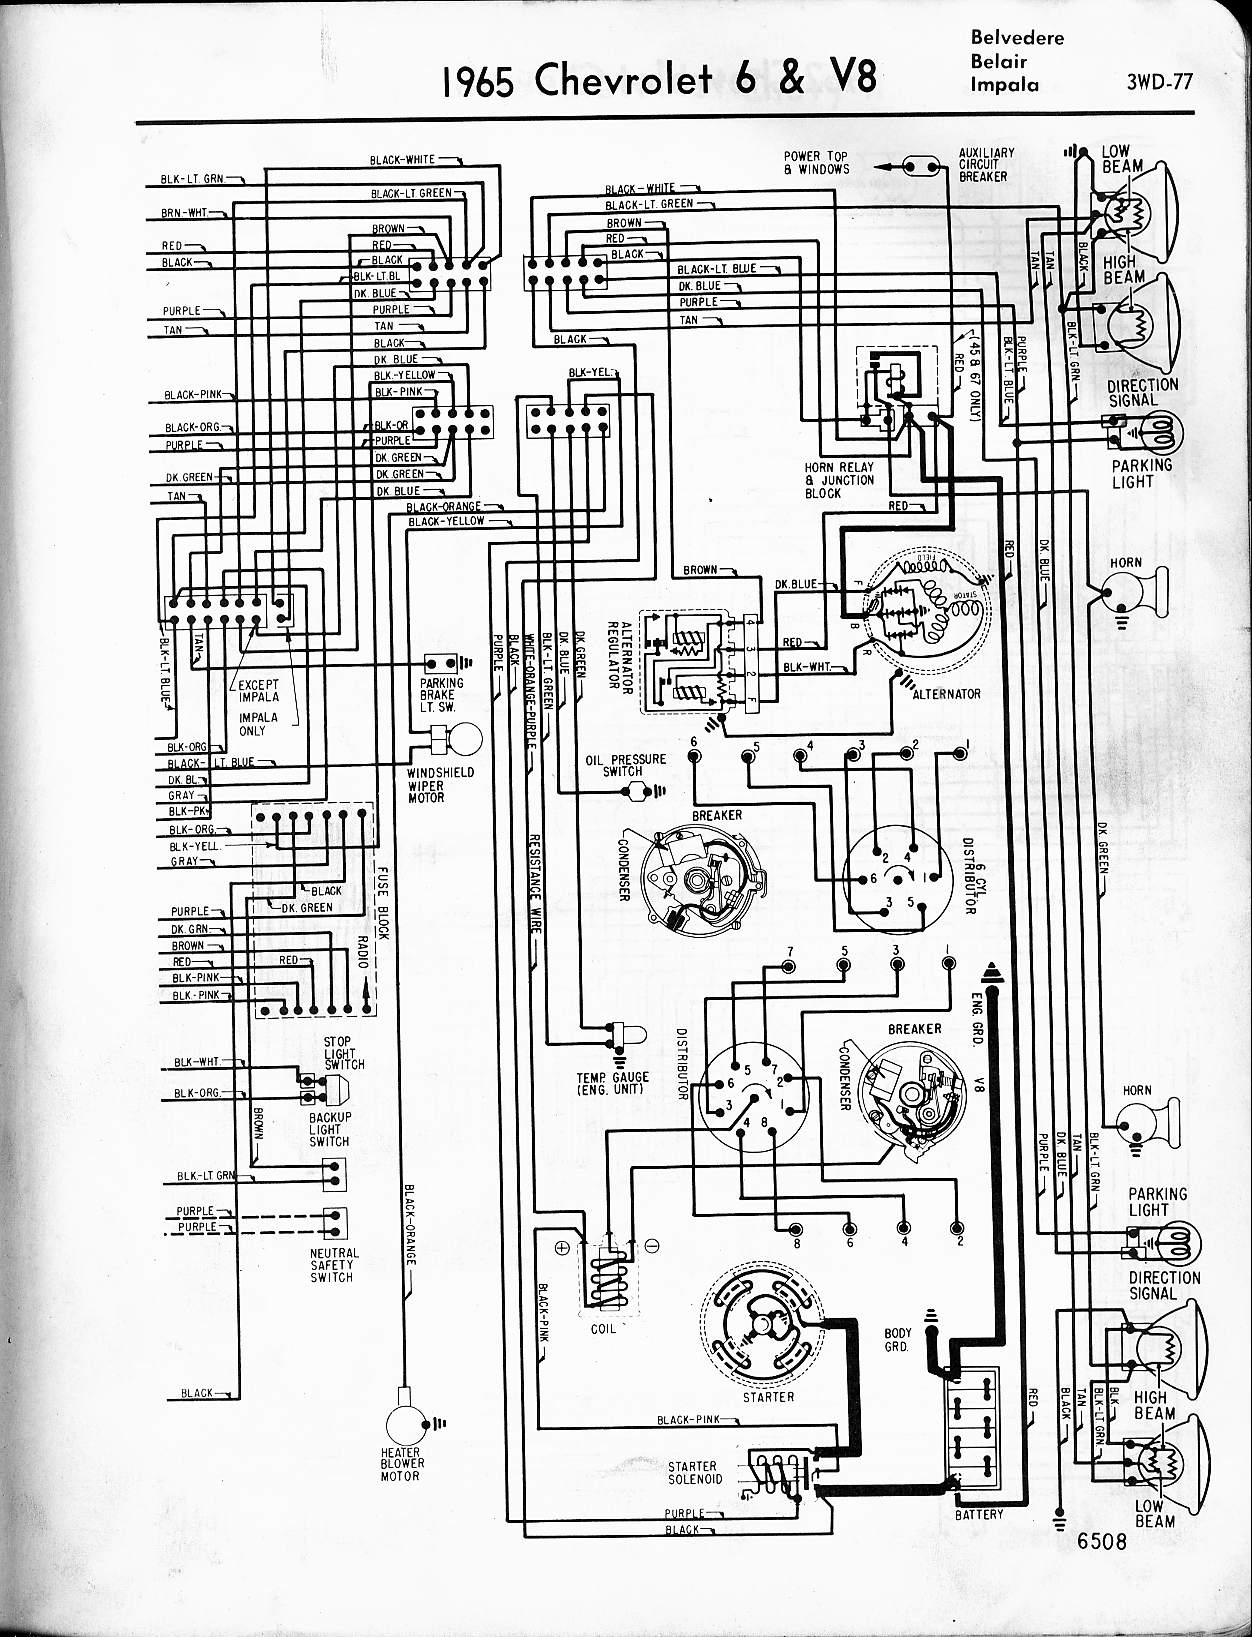 Turn And Hazard Wiring Diagram Chevrolet Books Of 1991 Toyota Pickup Signal Chevy Diagrams Rh Wizard Com